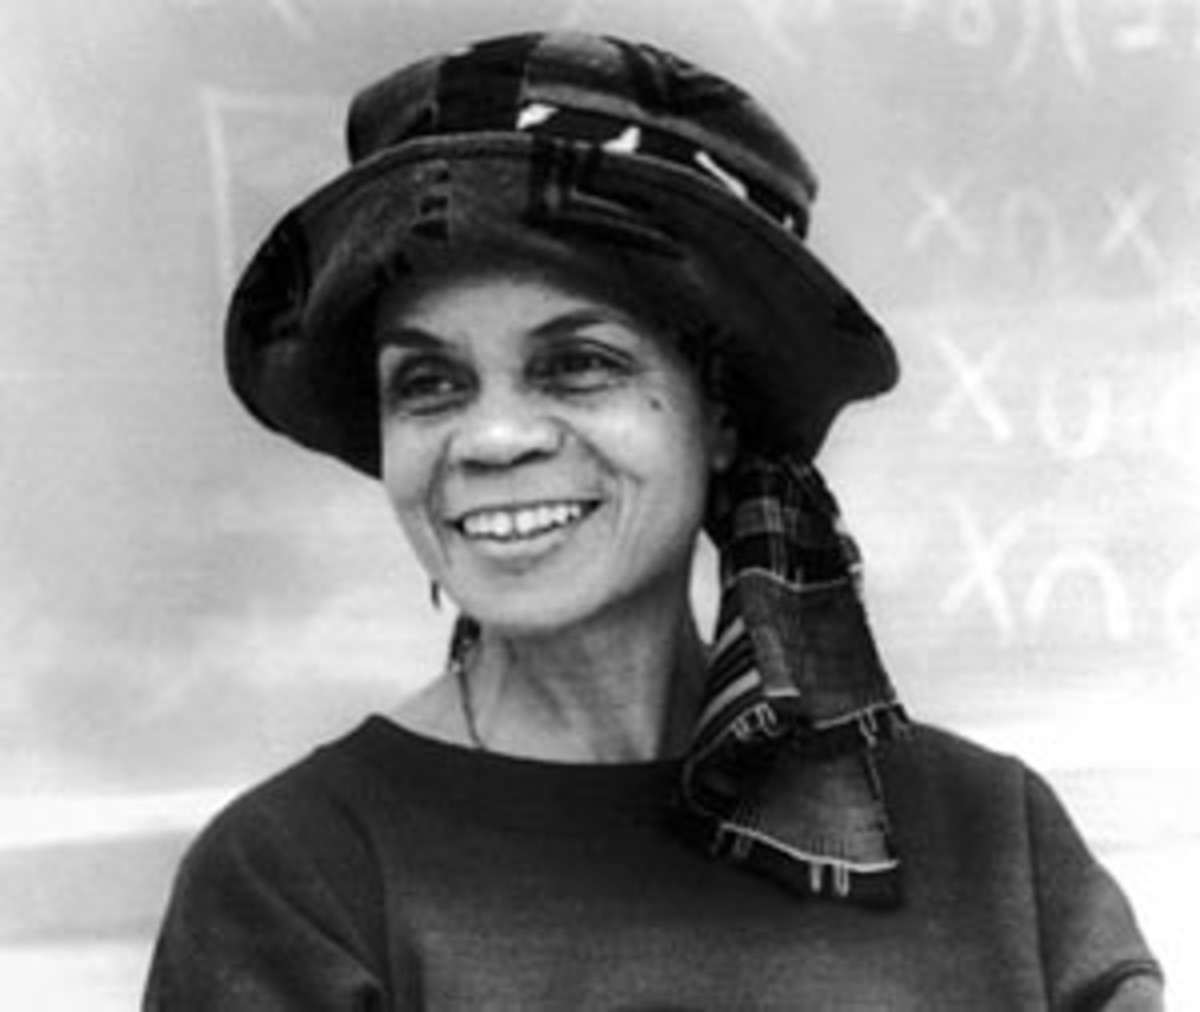 Sanchez began publishing her poems in the early 1960s in journals such as the Liberator and the Journal of Black Poetry. Her first book, Homecoming, was published in 1969. In addition to her poetry, Sanchez has published three books for children.